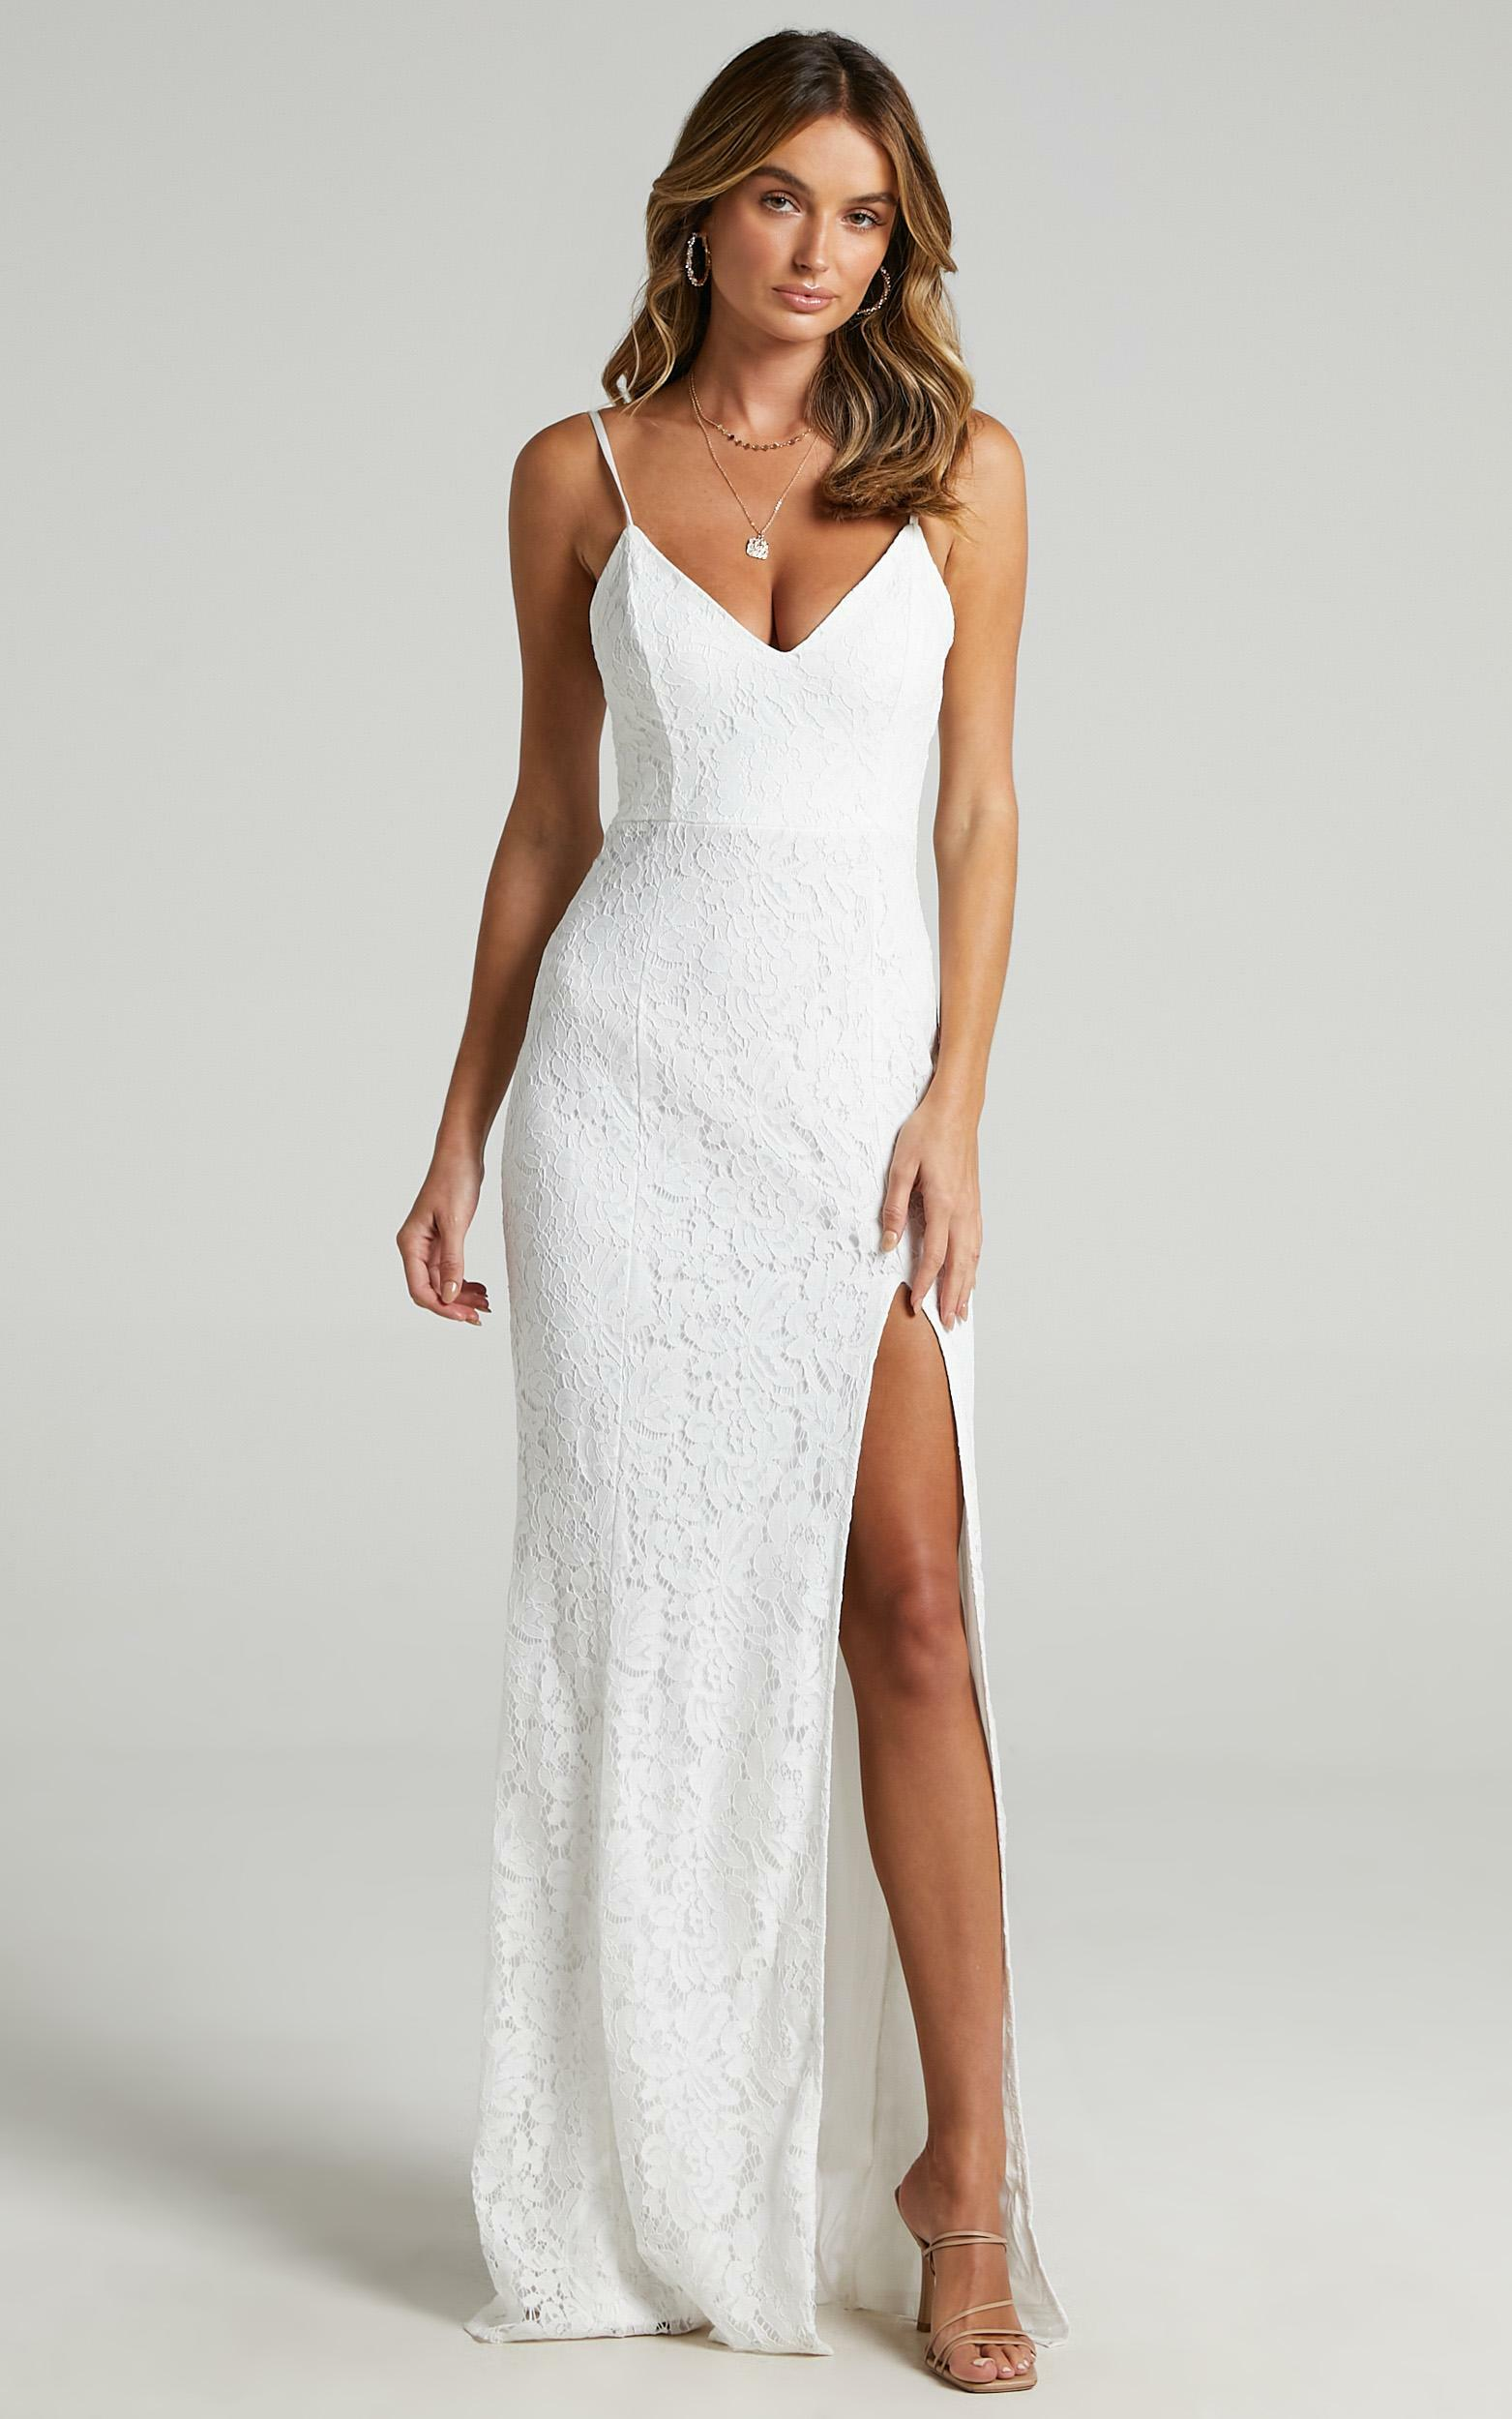 Always Extra Dress in White Lace - 14, WHT1, hi-res image number null